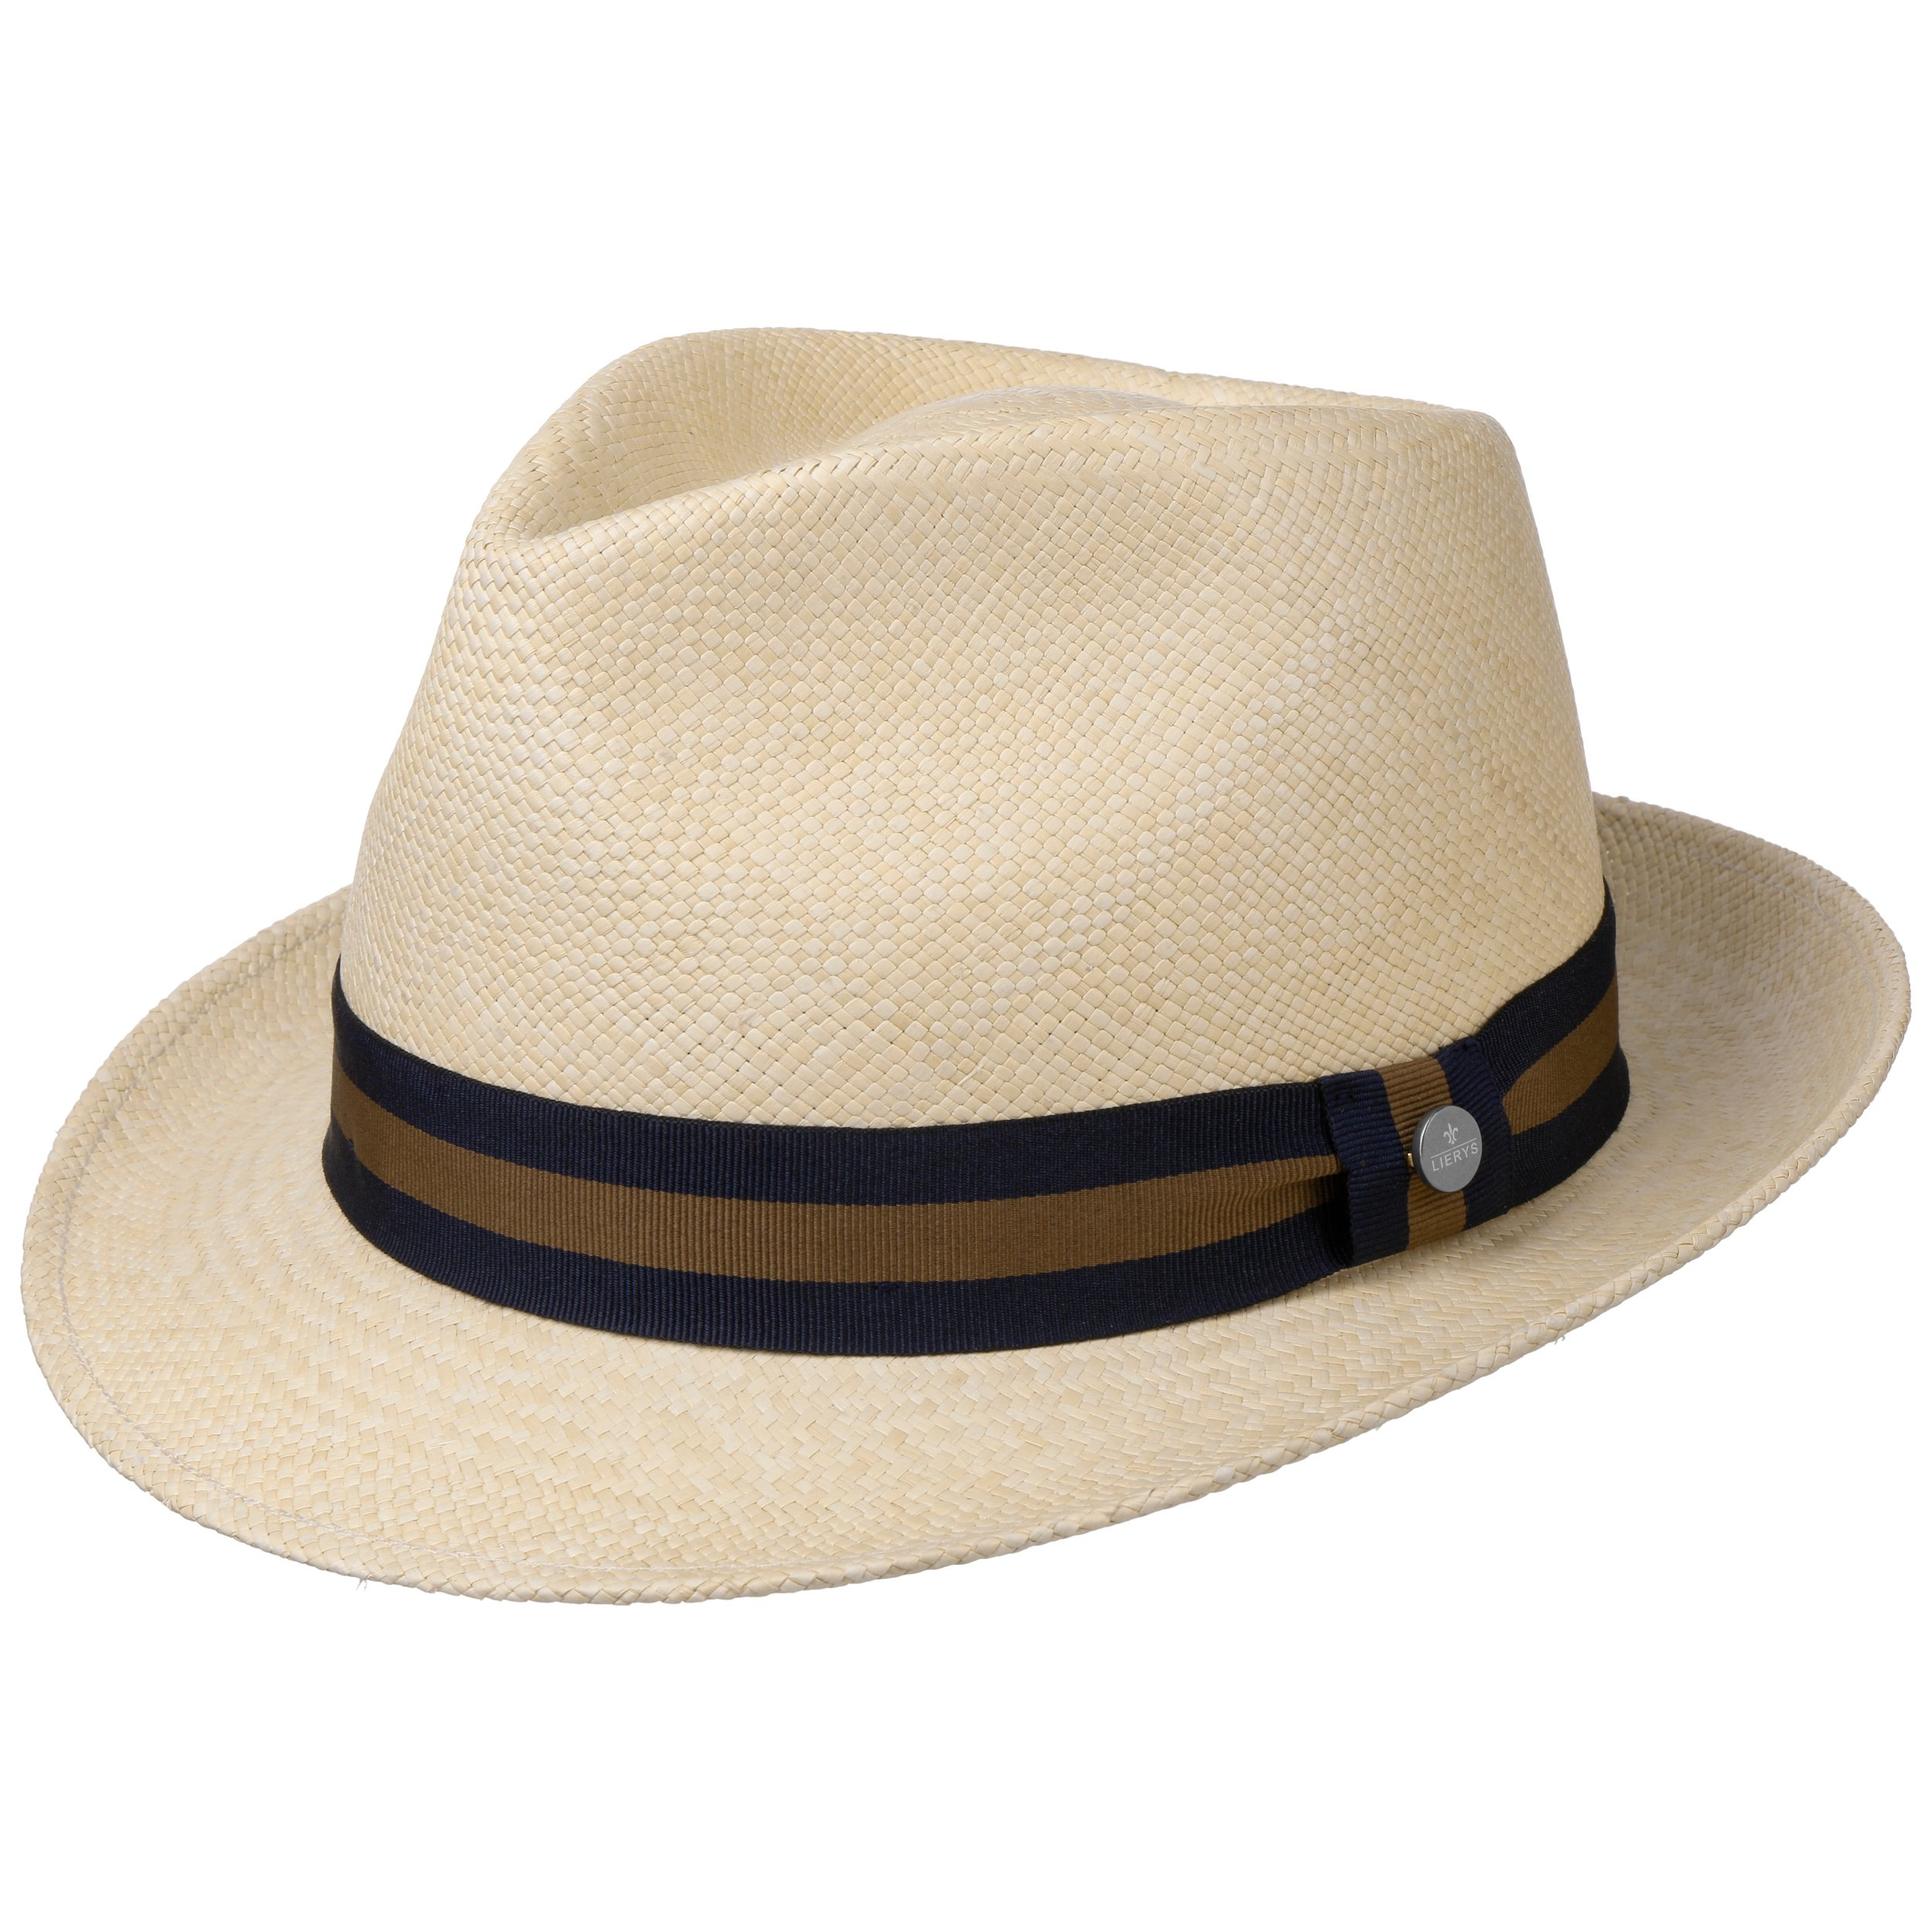 c26157cf532 ... Sportive Trilby Panama Hat by Lierys - nature-navy 4 ...